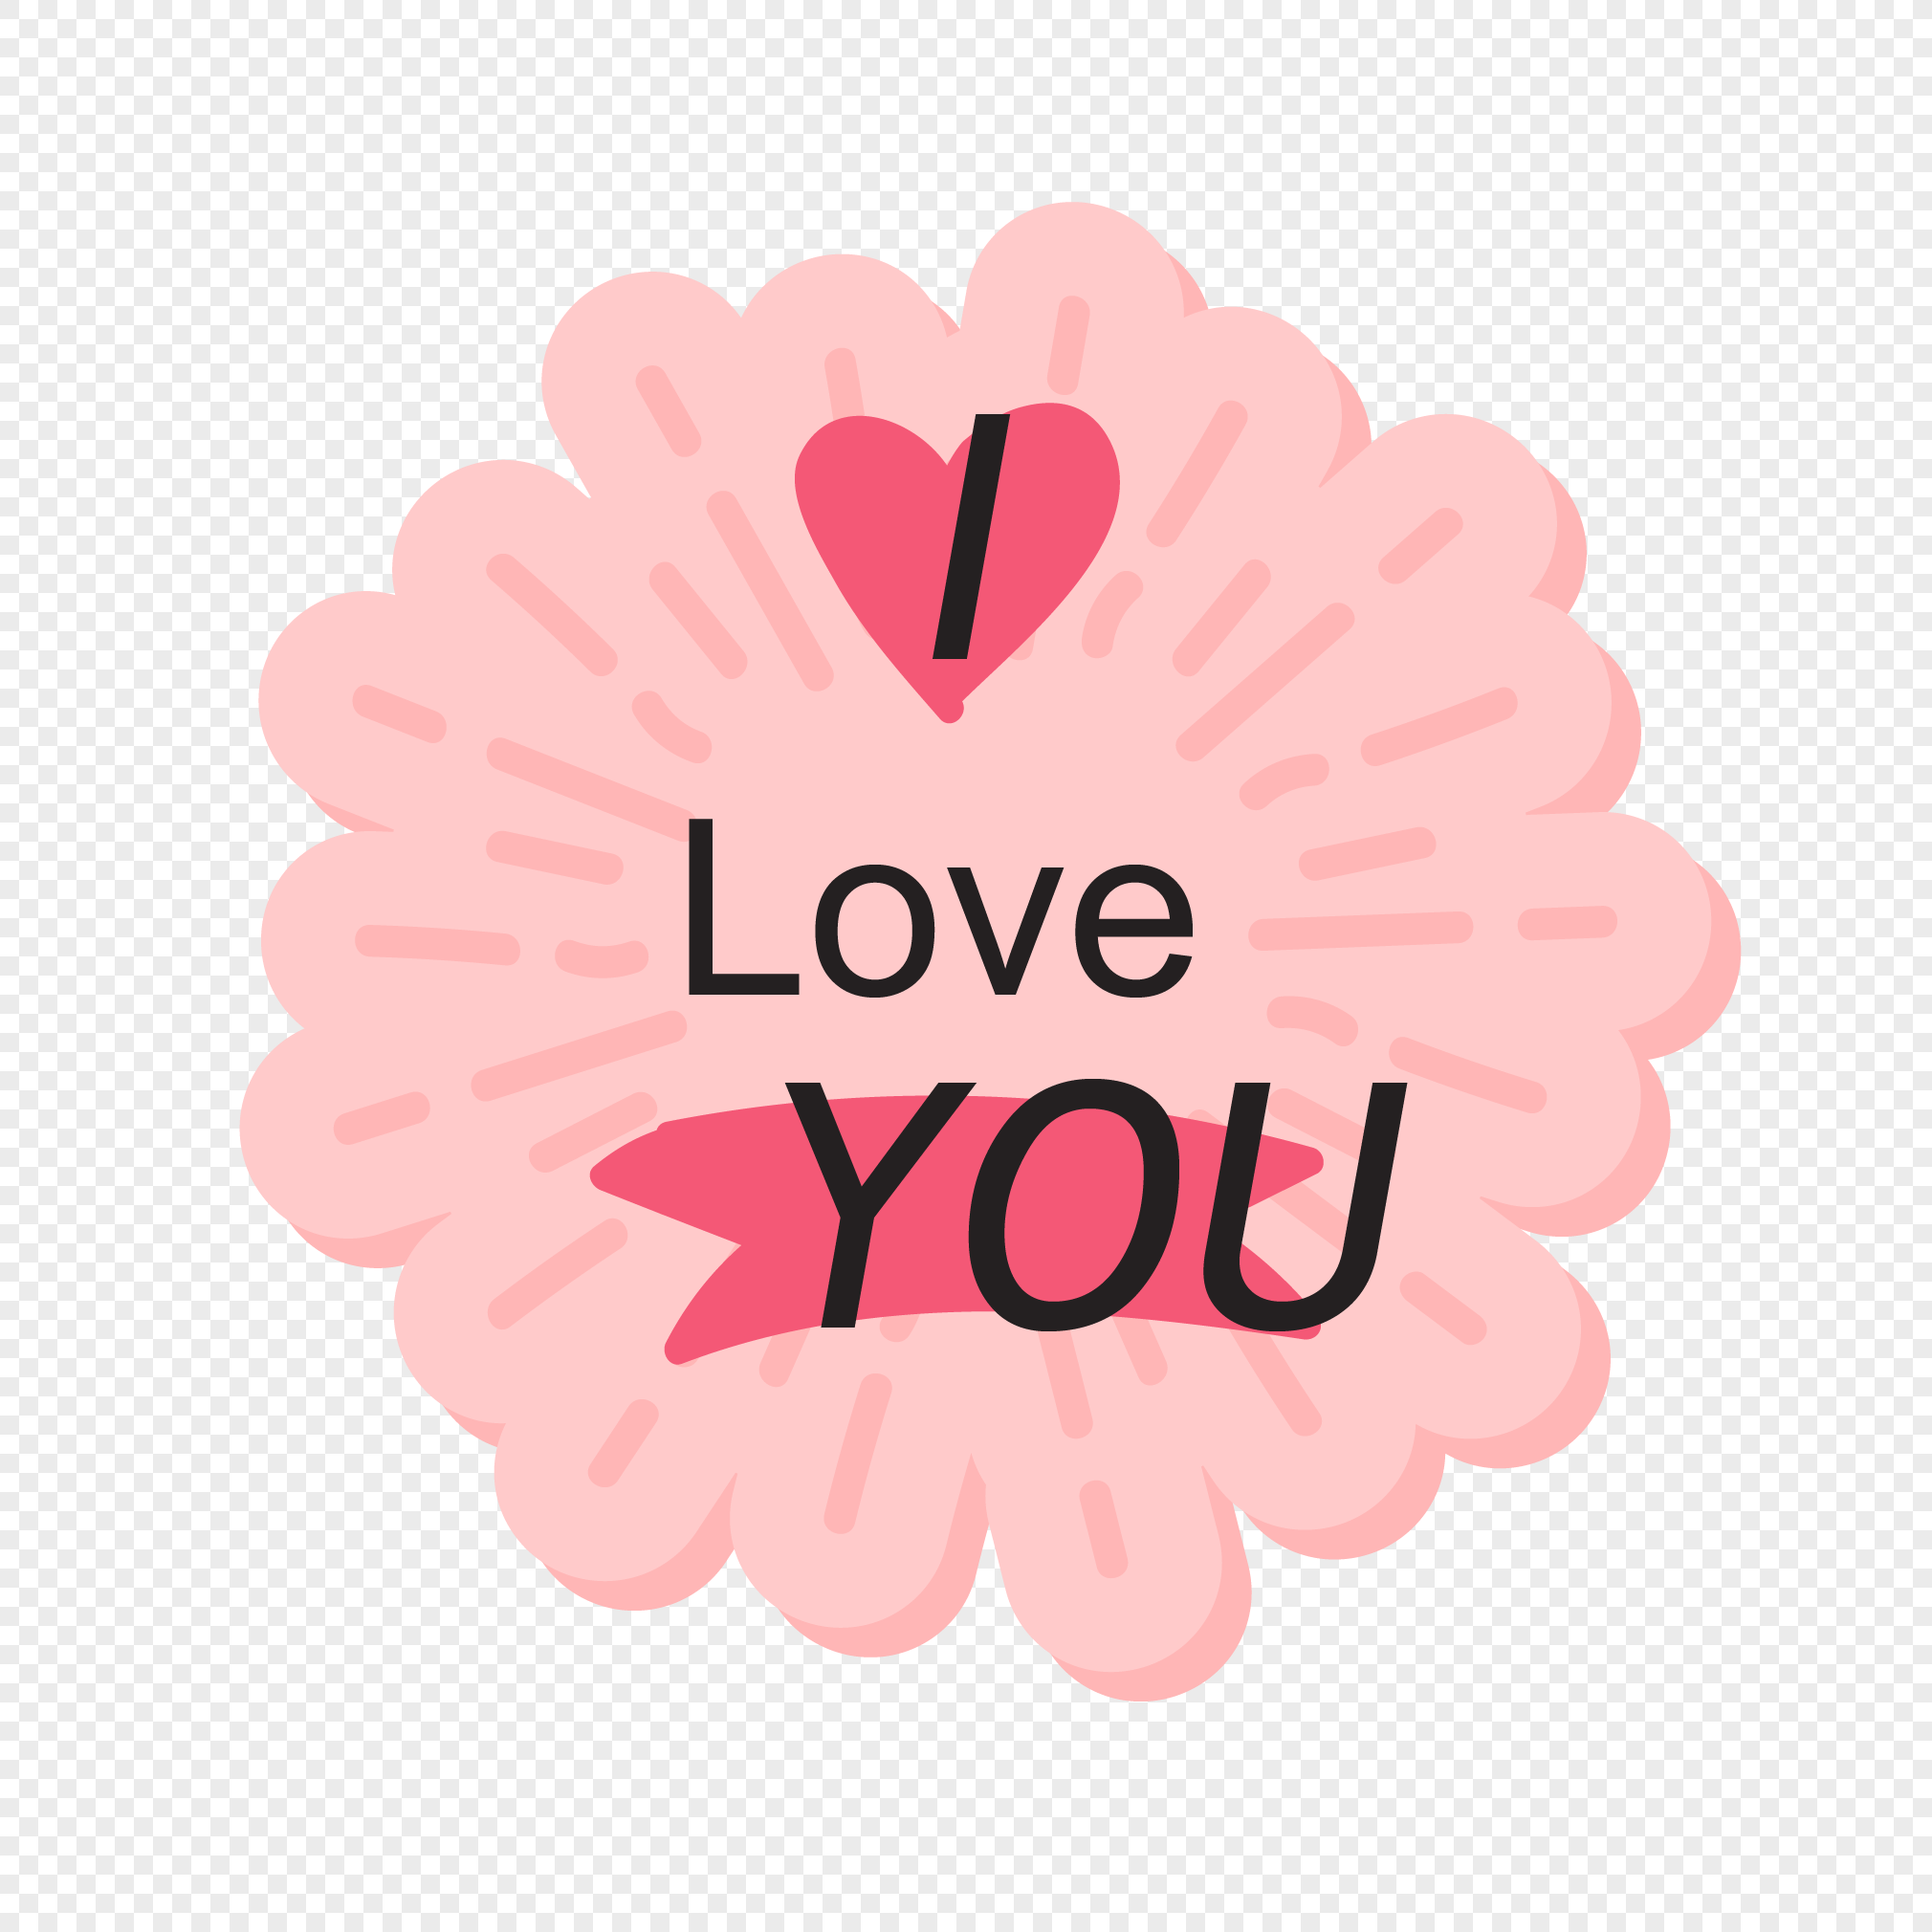 Aesthetic Love Valentines Day Tagging Vector Material Png